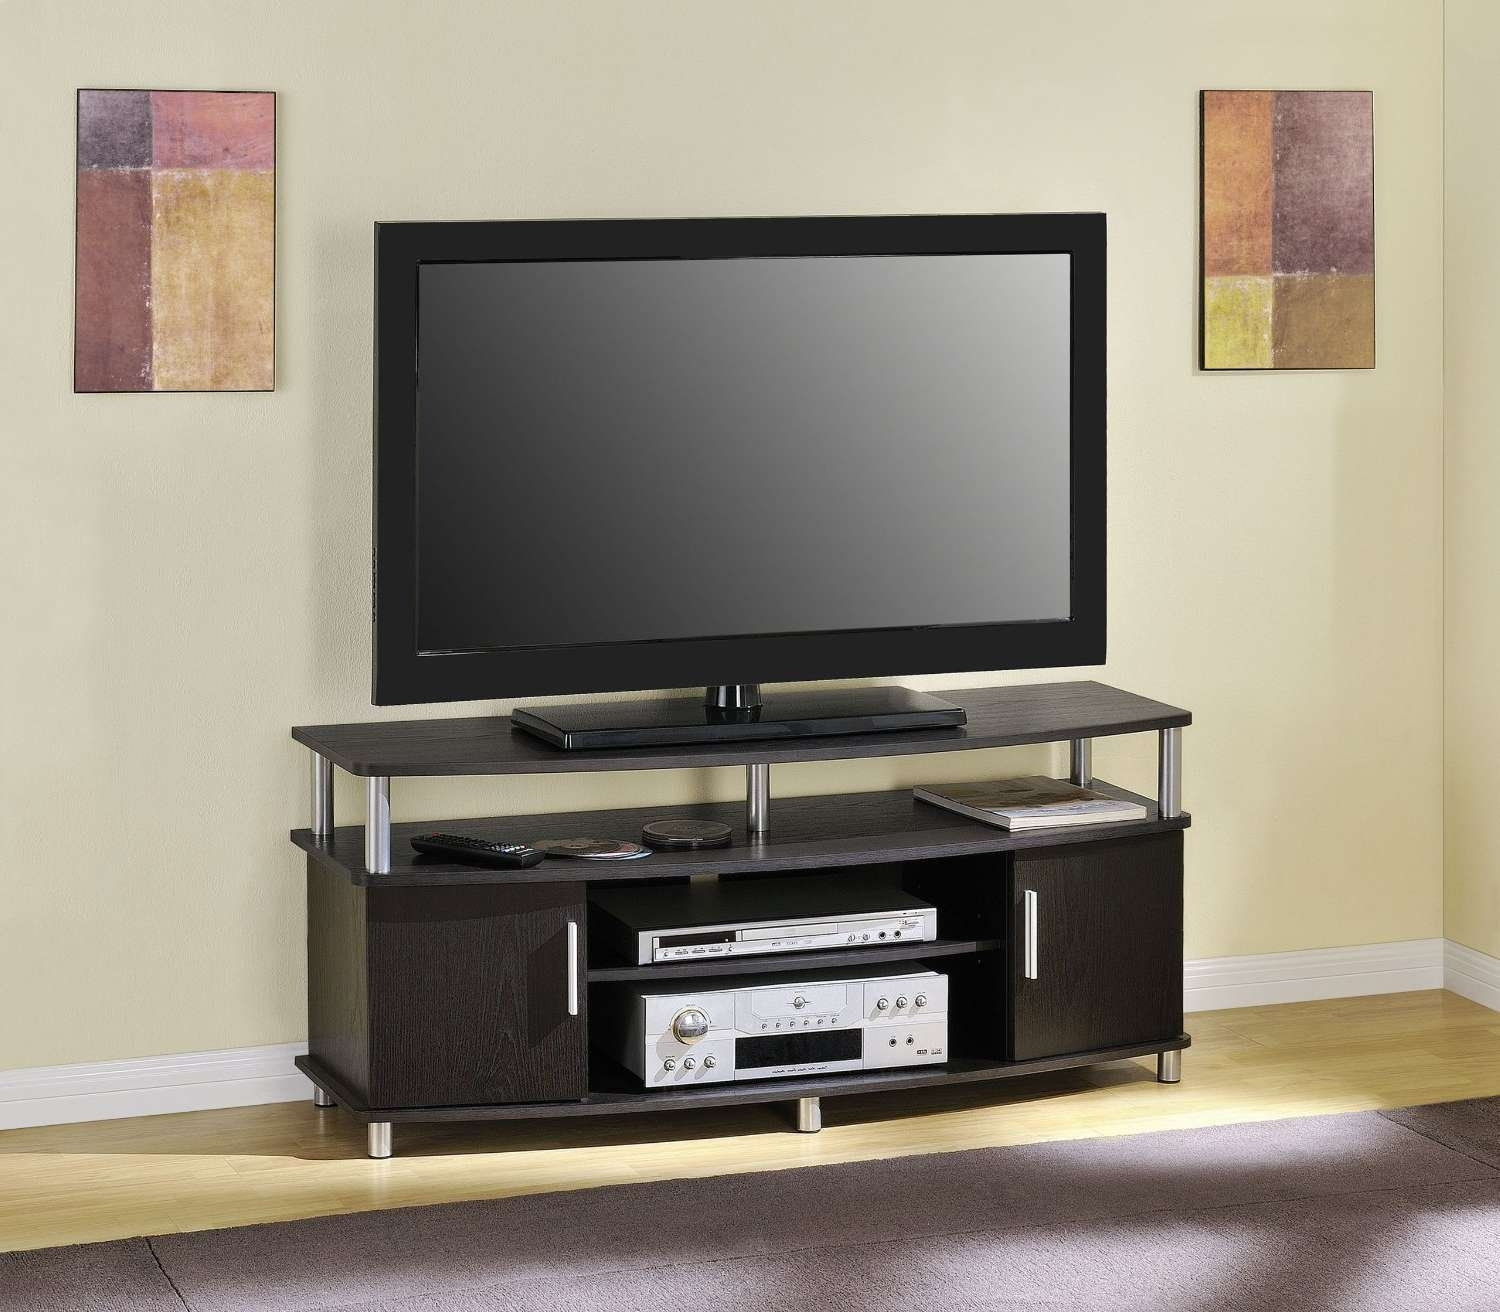 Tv Stands: 7 Best Selling Flat Screen Tv Stands 2017 For Big Tv Stands Furniture (View 15 of 15)